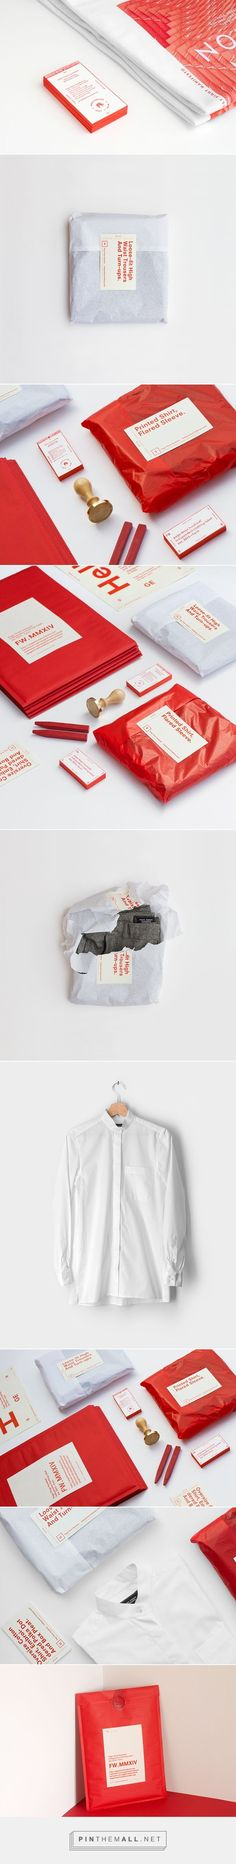 P/T/H . MMXIV F/W Collection - Clothing Label. Red and white brand ID / packaging